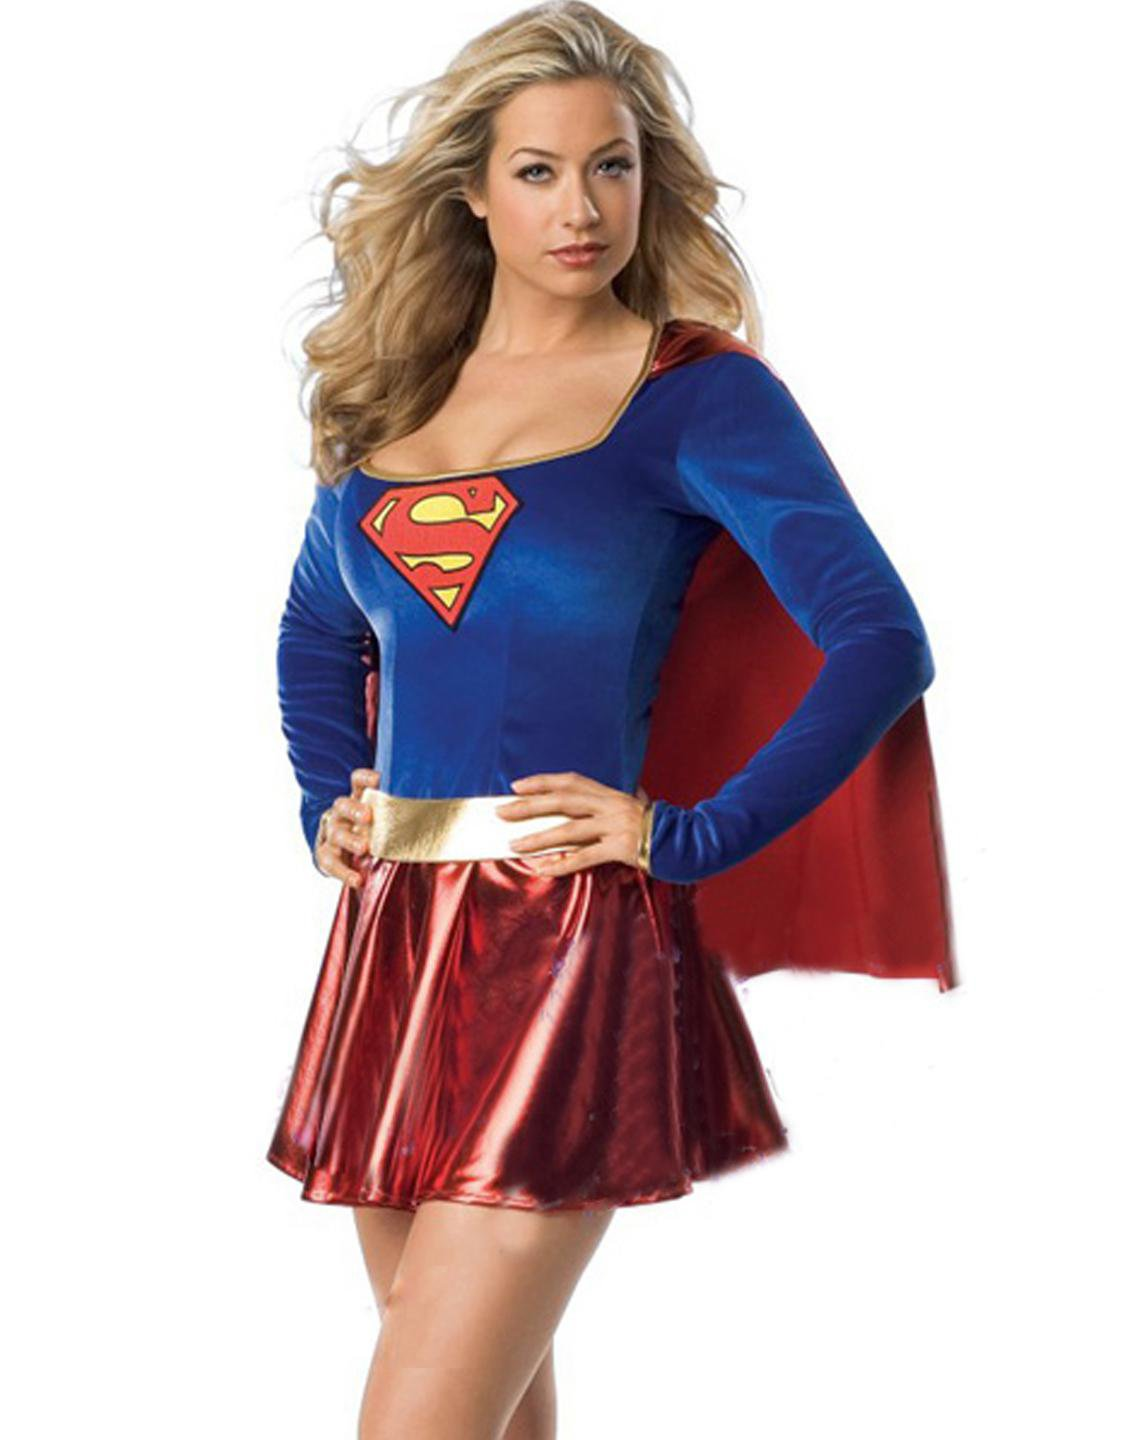 Super Heroine Uniform Adult DC Comics Costume Fancy Dress Stunning Supergirl Costume